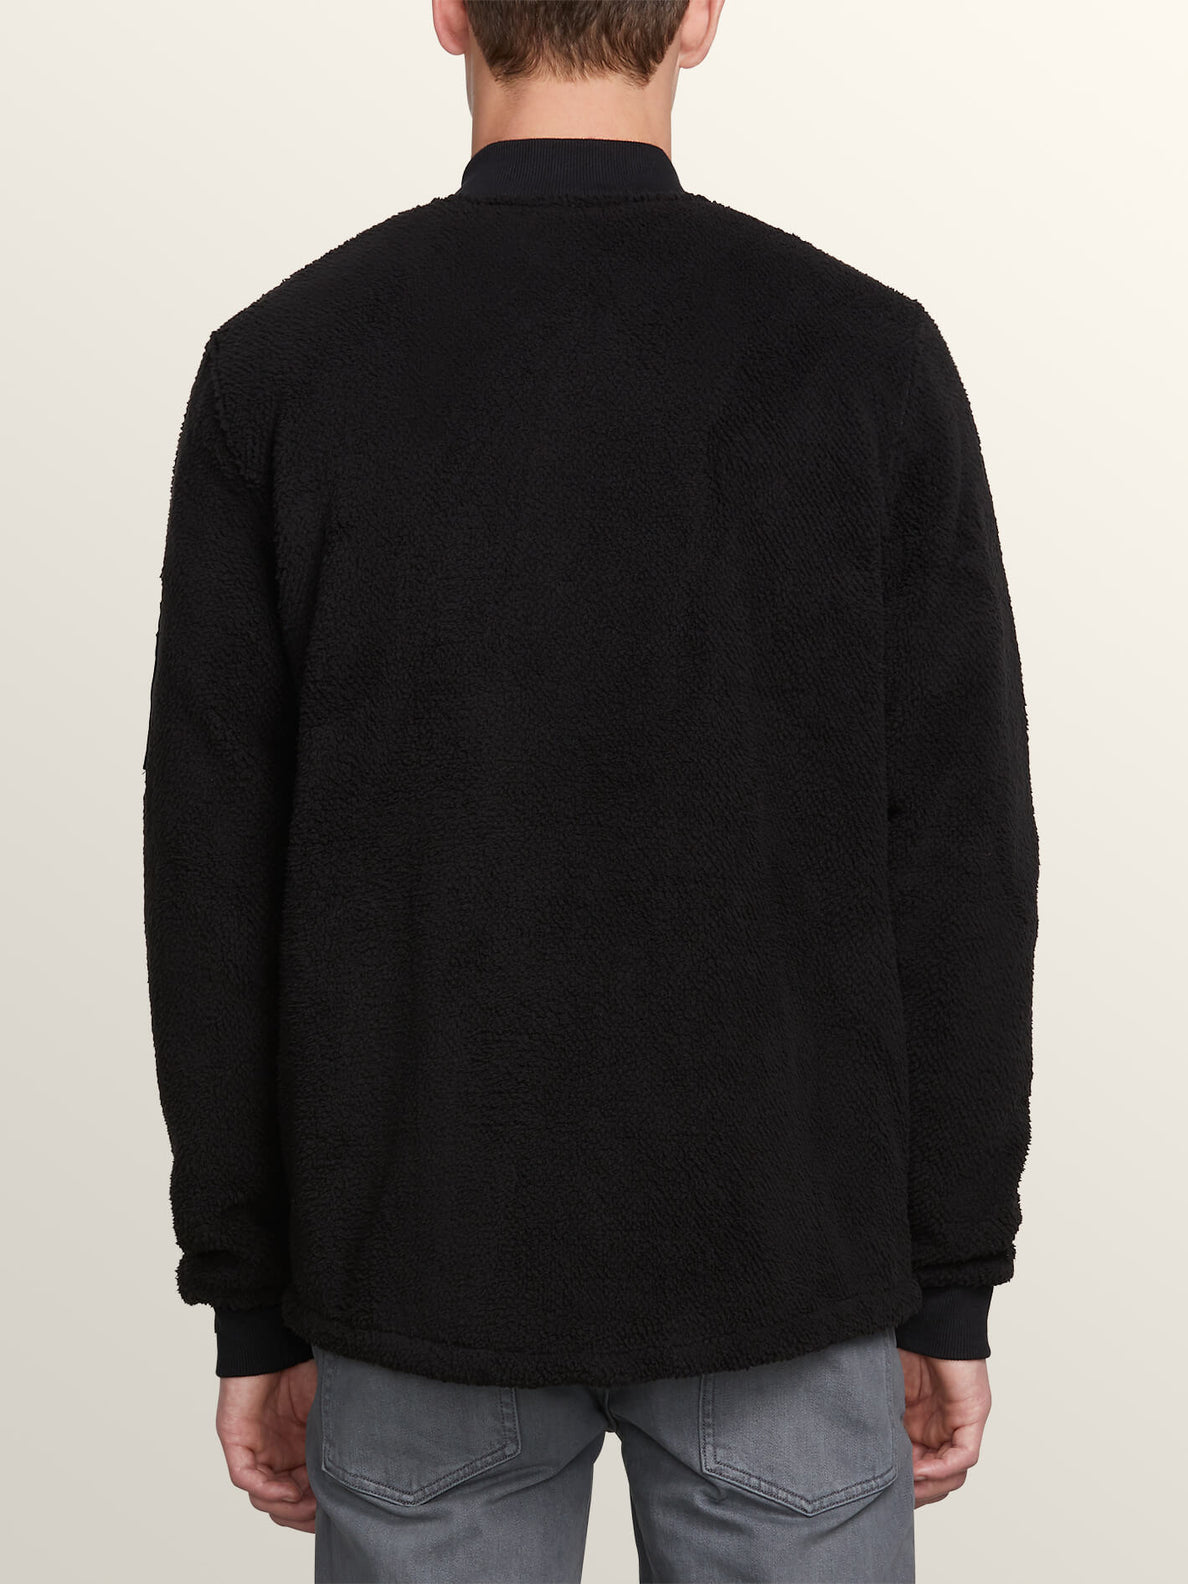 Field Polar Fleece In Black, Back View